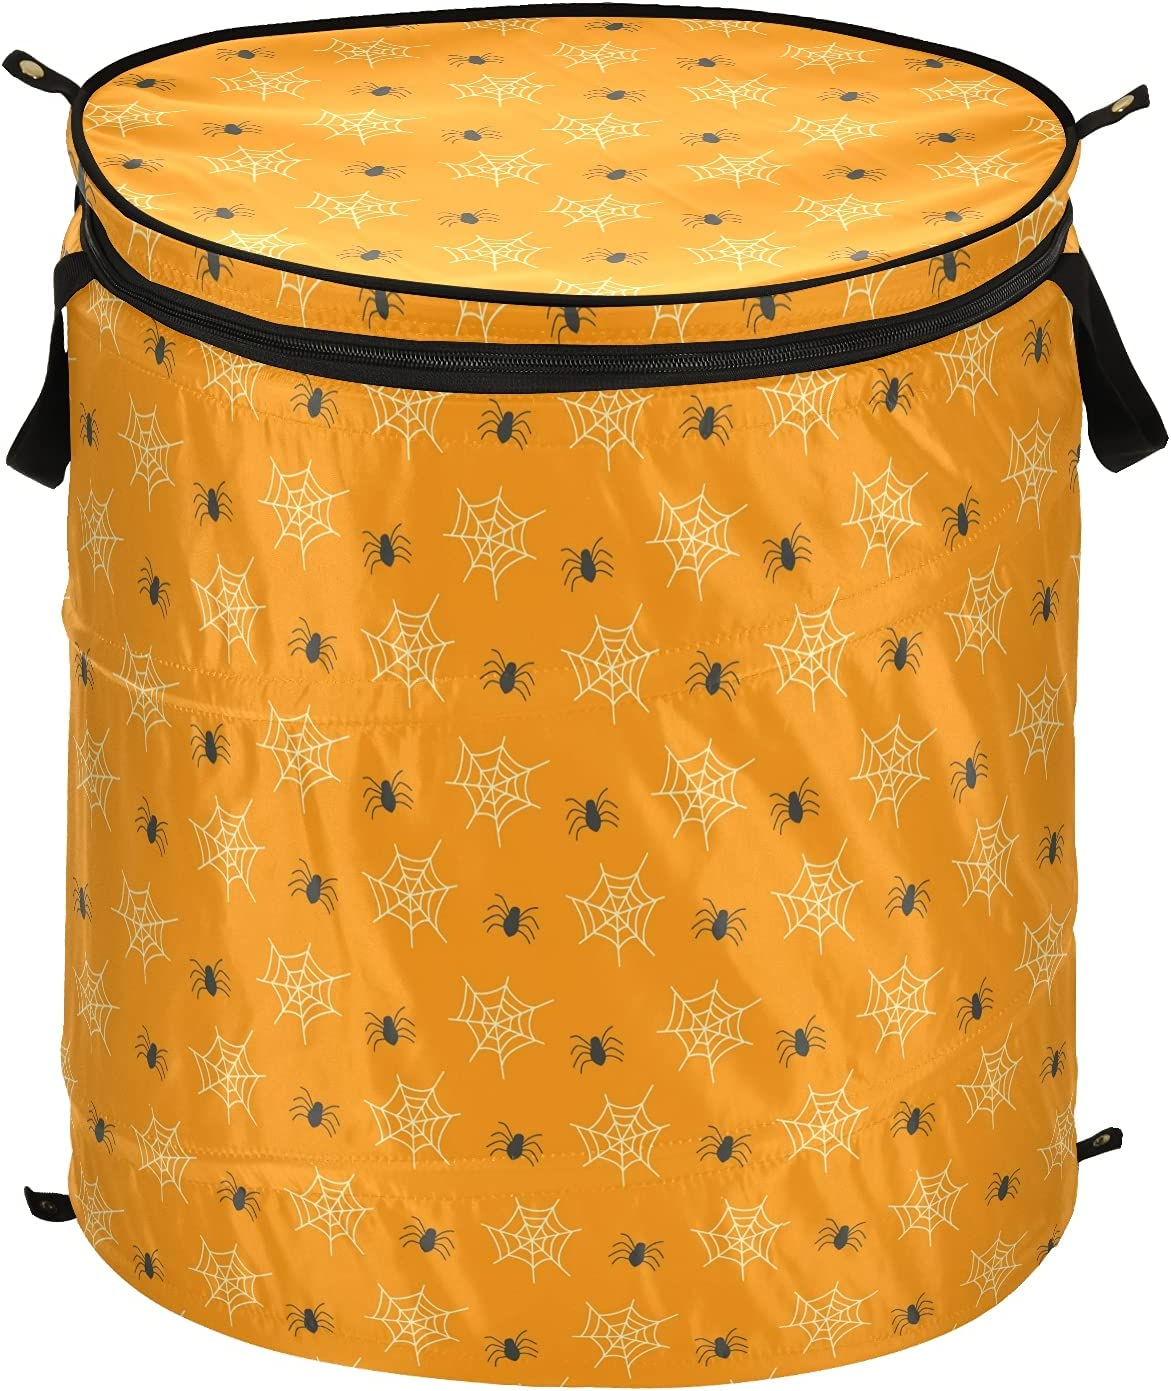 Happy Halloween Spider Web Pop Bombing new work Up Max 48% OFF Lid with Foldab Hamper Laundry